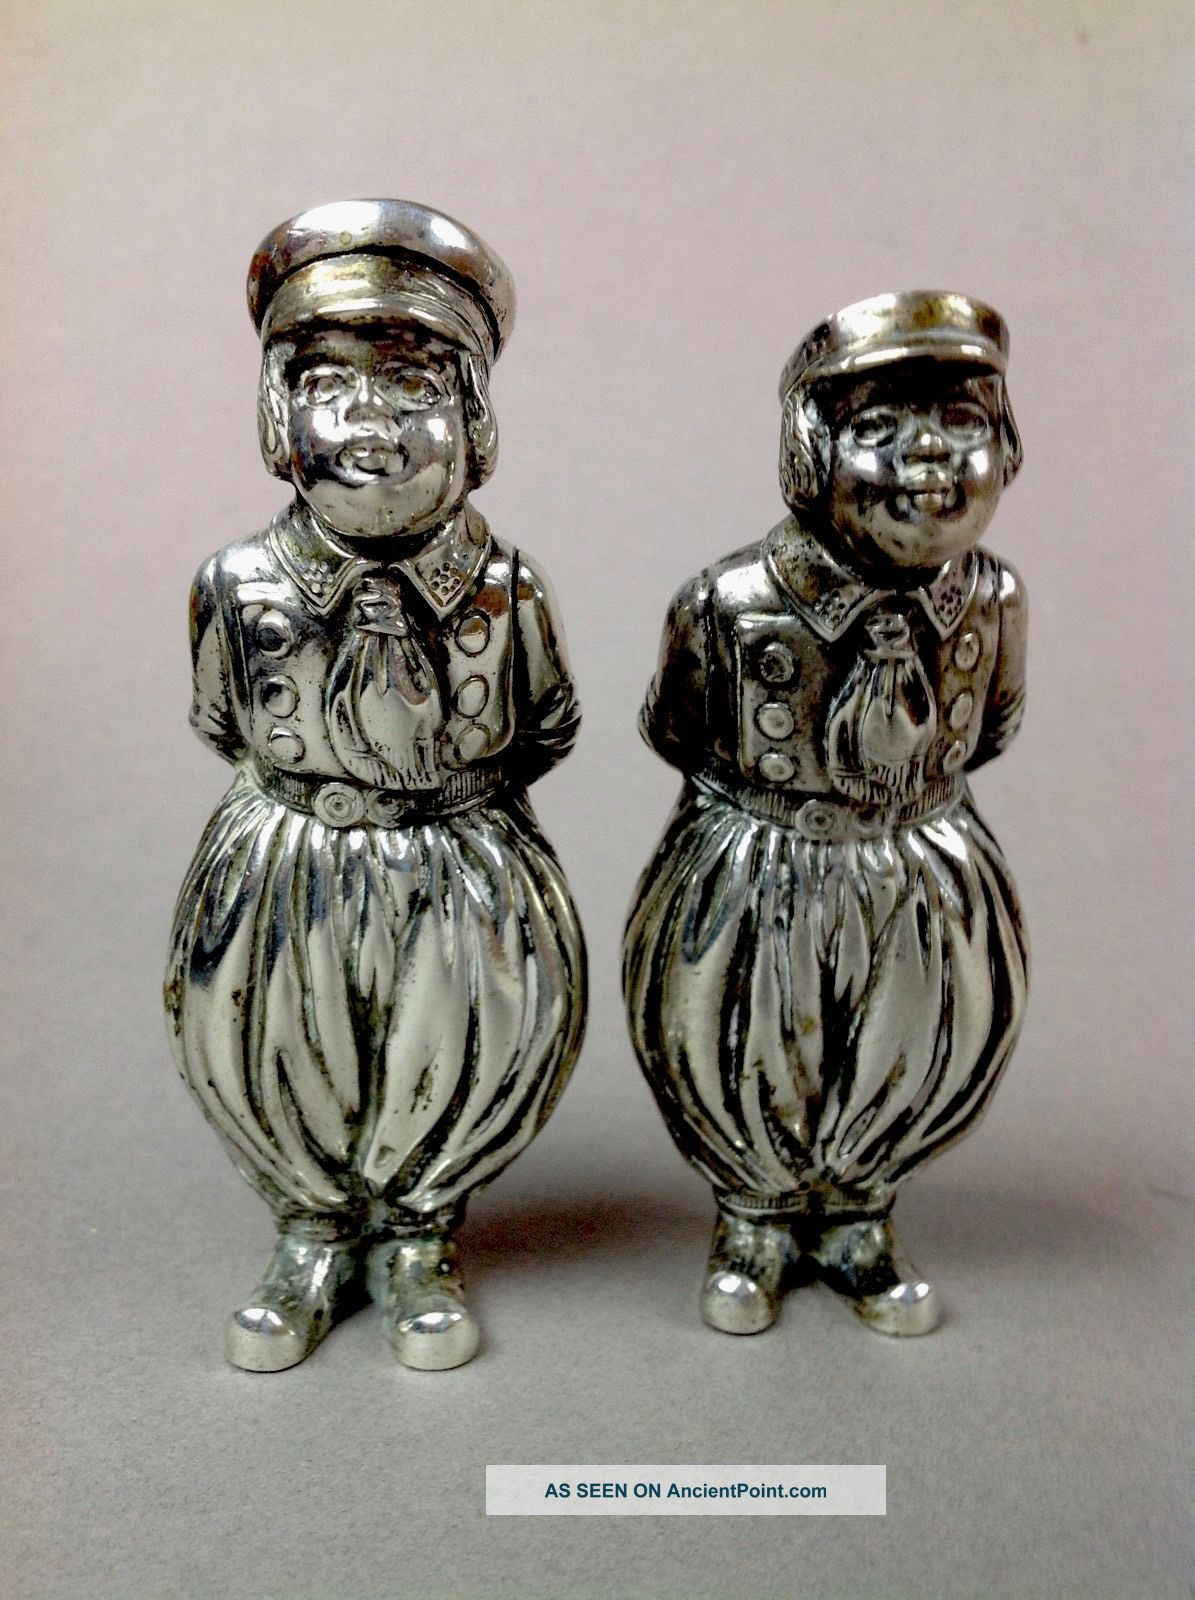 Antique Pair German 800 Sterling Silver Hanau Figural Dutch Boy Salt Shakers173g Salt & Pepper Shakers photo